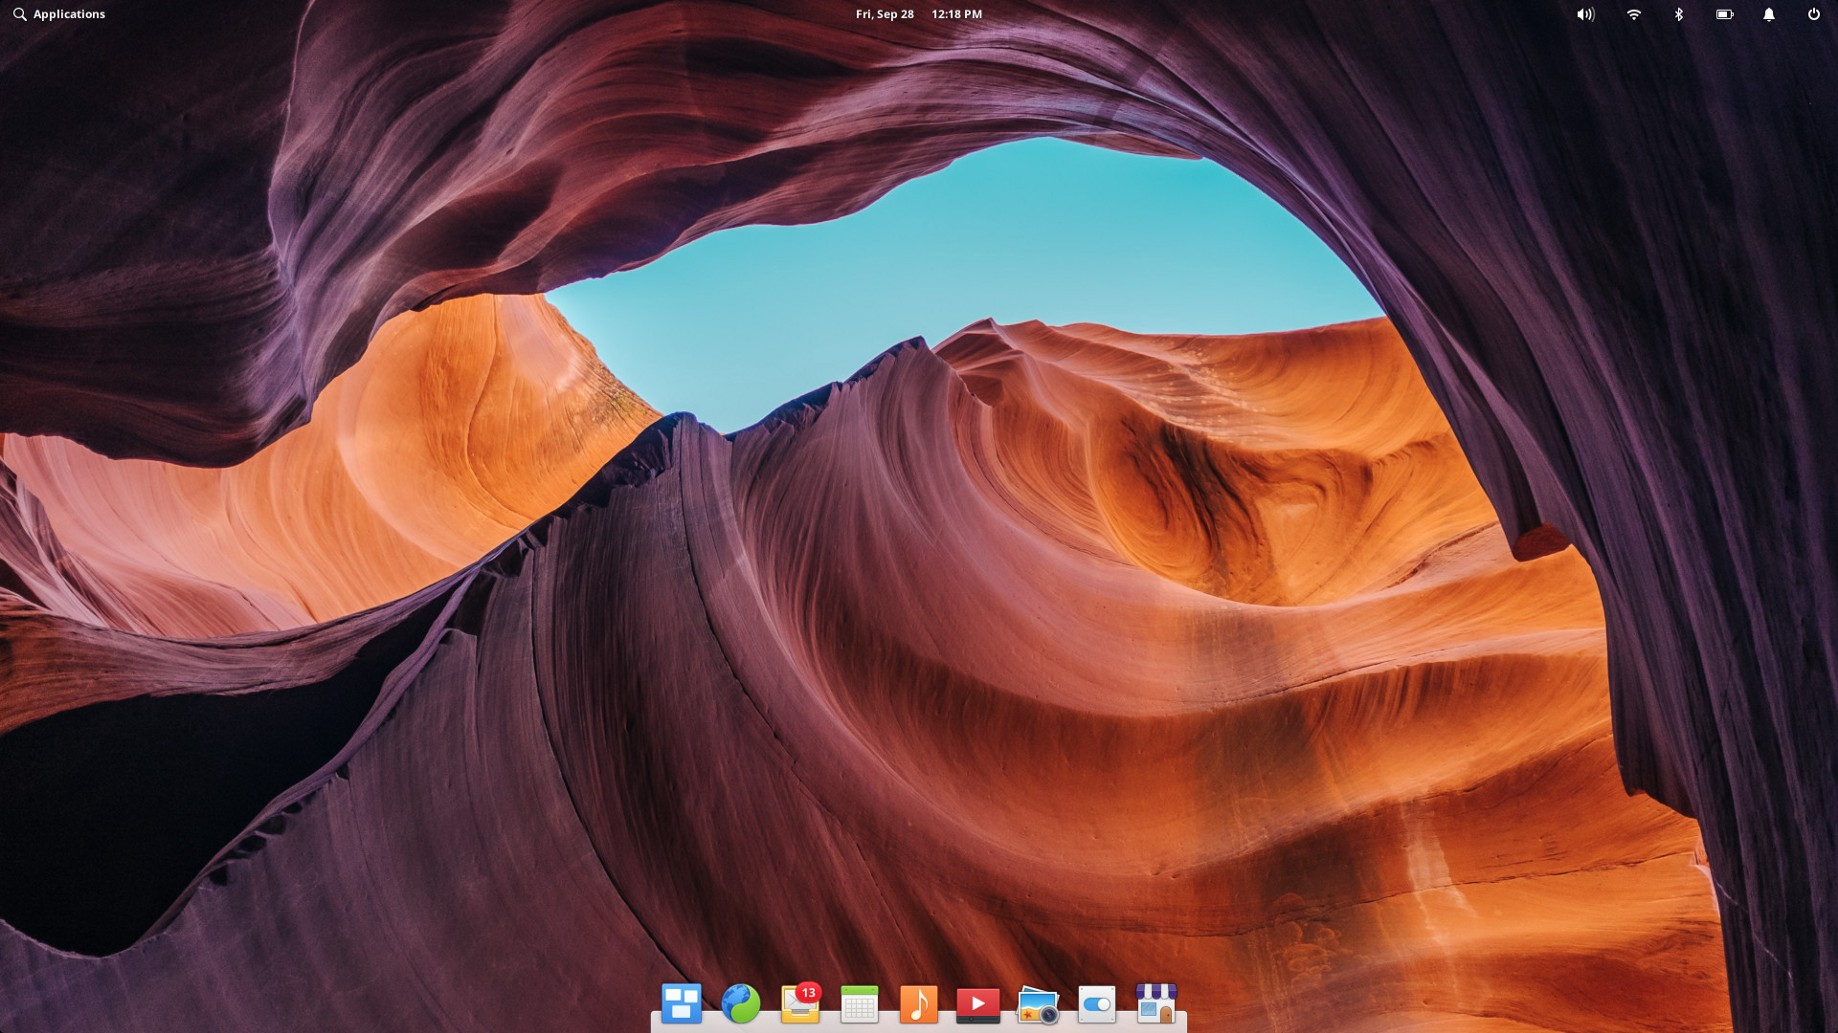 Normalizing Elementary OS: 3 Tweaks For Using Pantheon as a Daily Driver